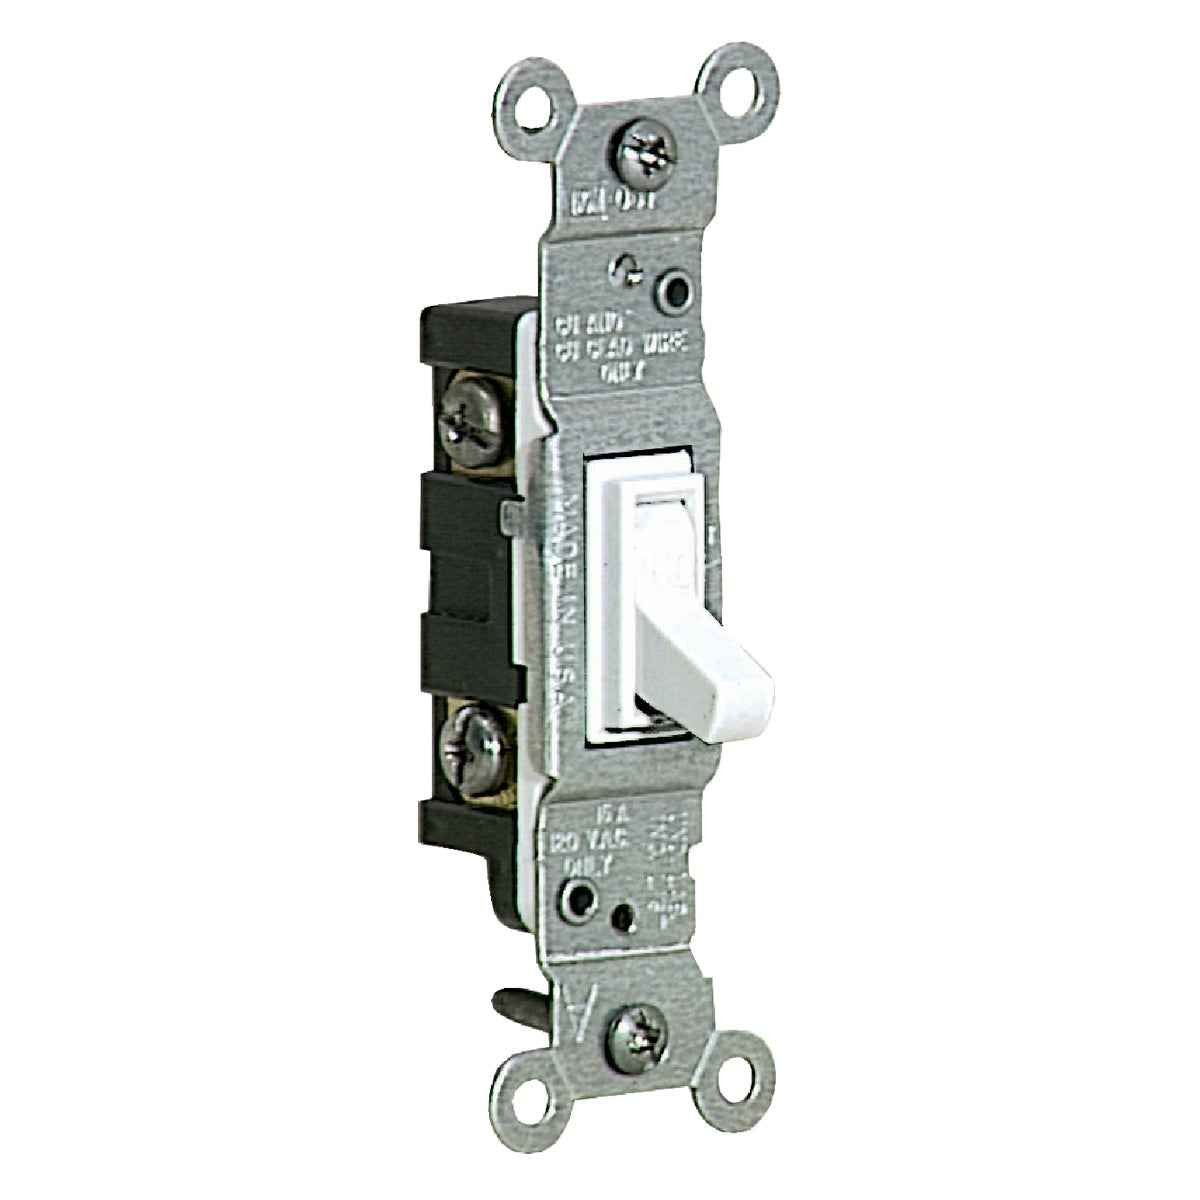 SGL POLE GROUNDED SWITCH - S02-1451-2WS by Leviton Mfg Co